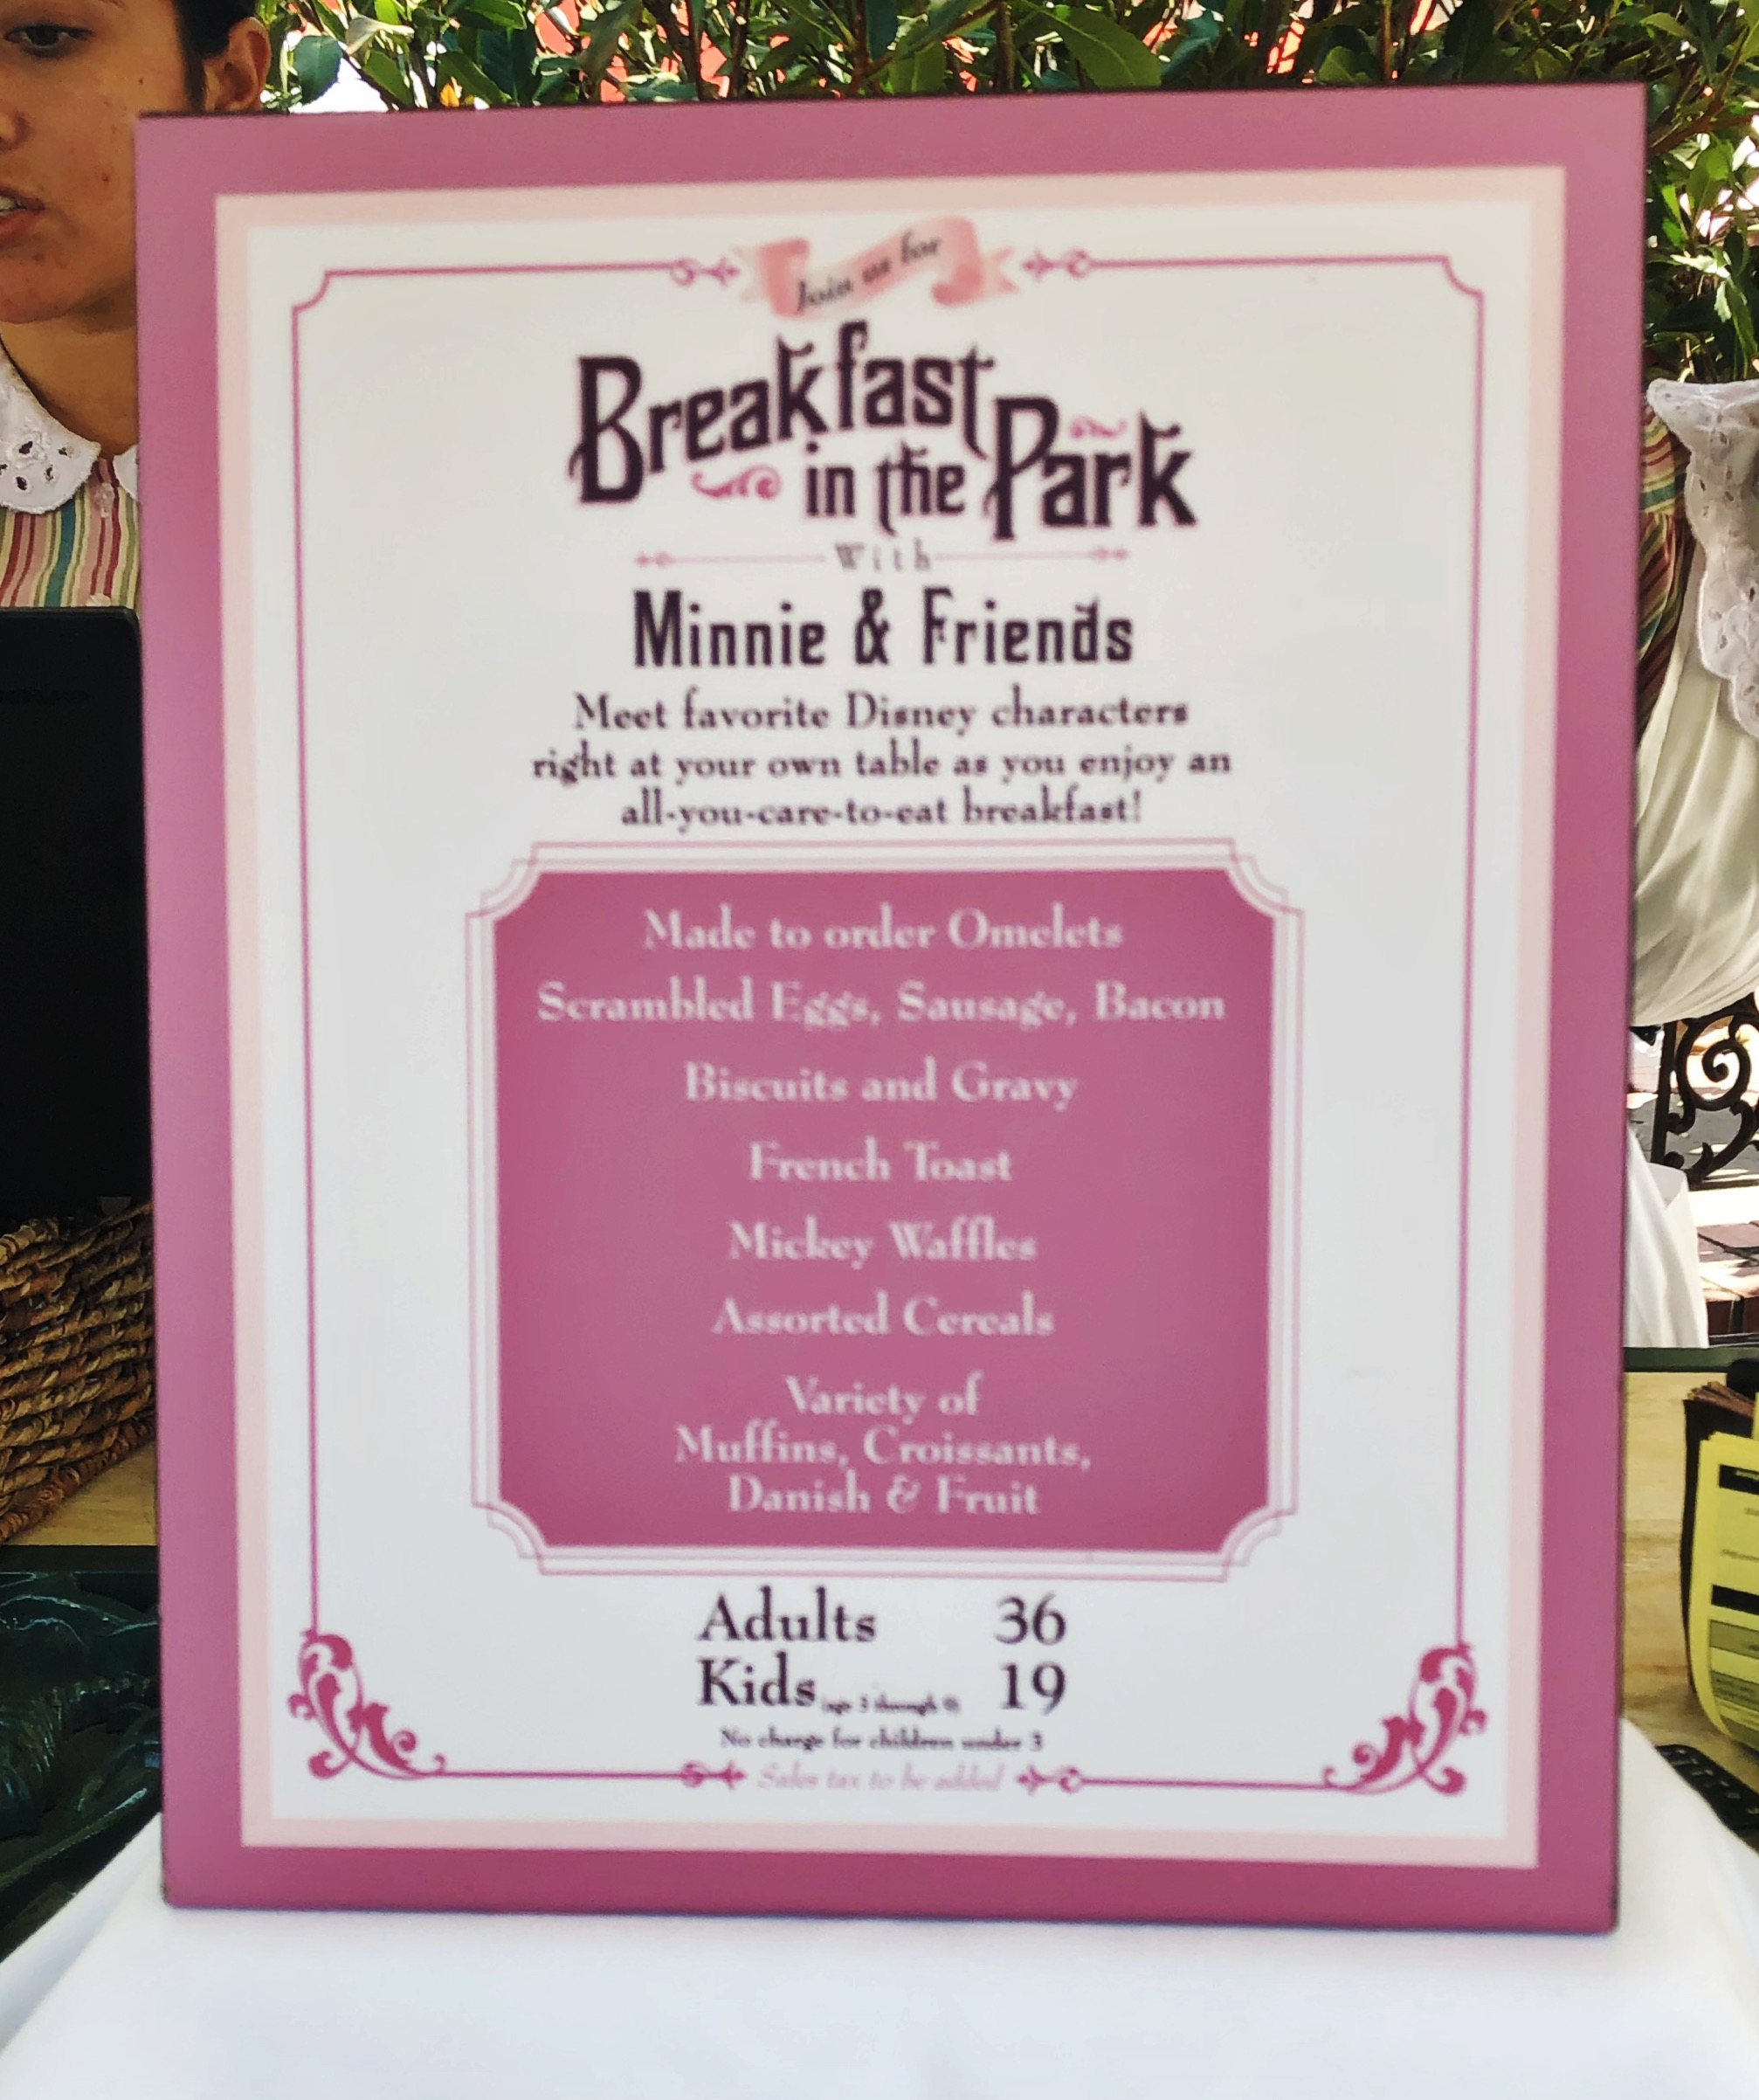 Plaza Inn  Breakfast In the Park with Minnie and Friends Character Dining Review by Practically Perfect Meg. #Disney #Disneywithkids #familytravel #Disneyland #CharacterDining #DisneyFood #DisneylandResort